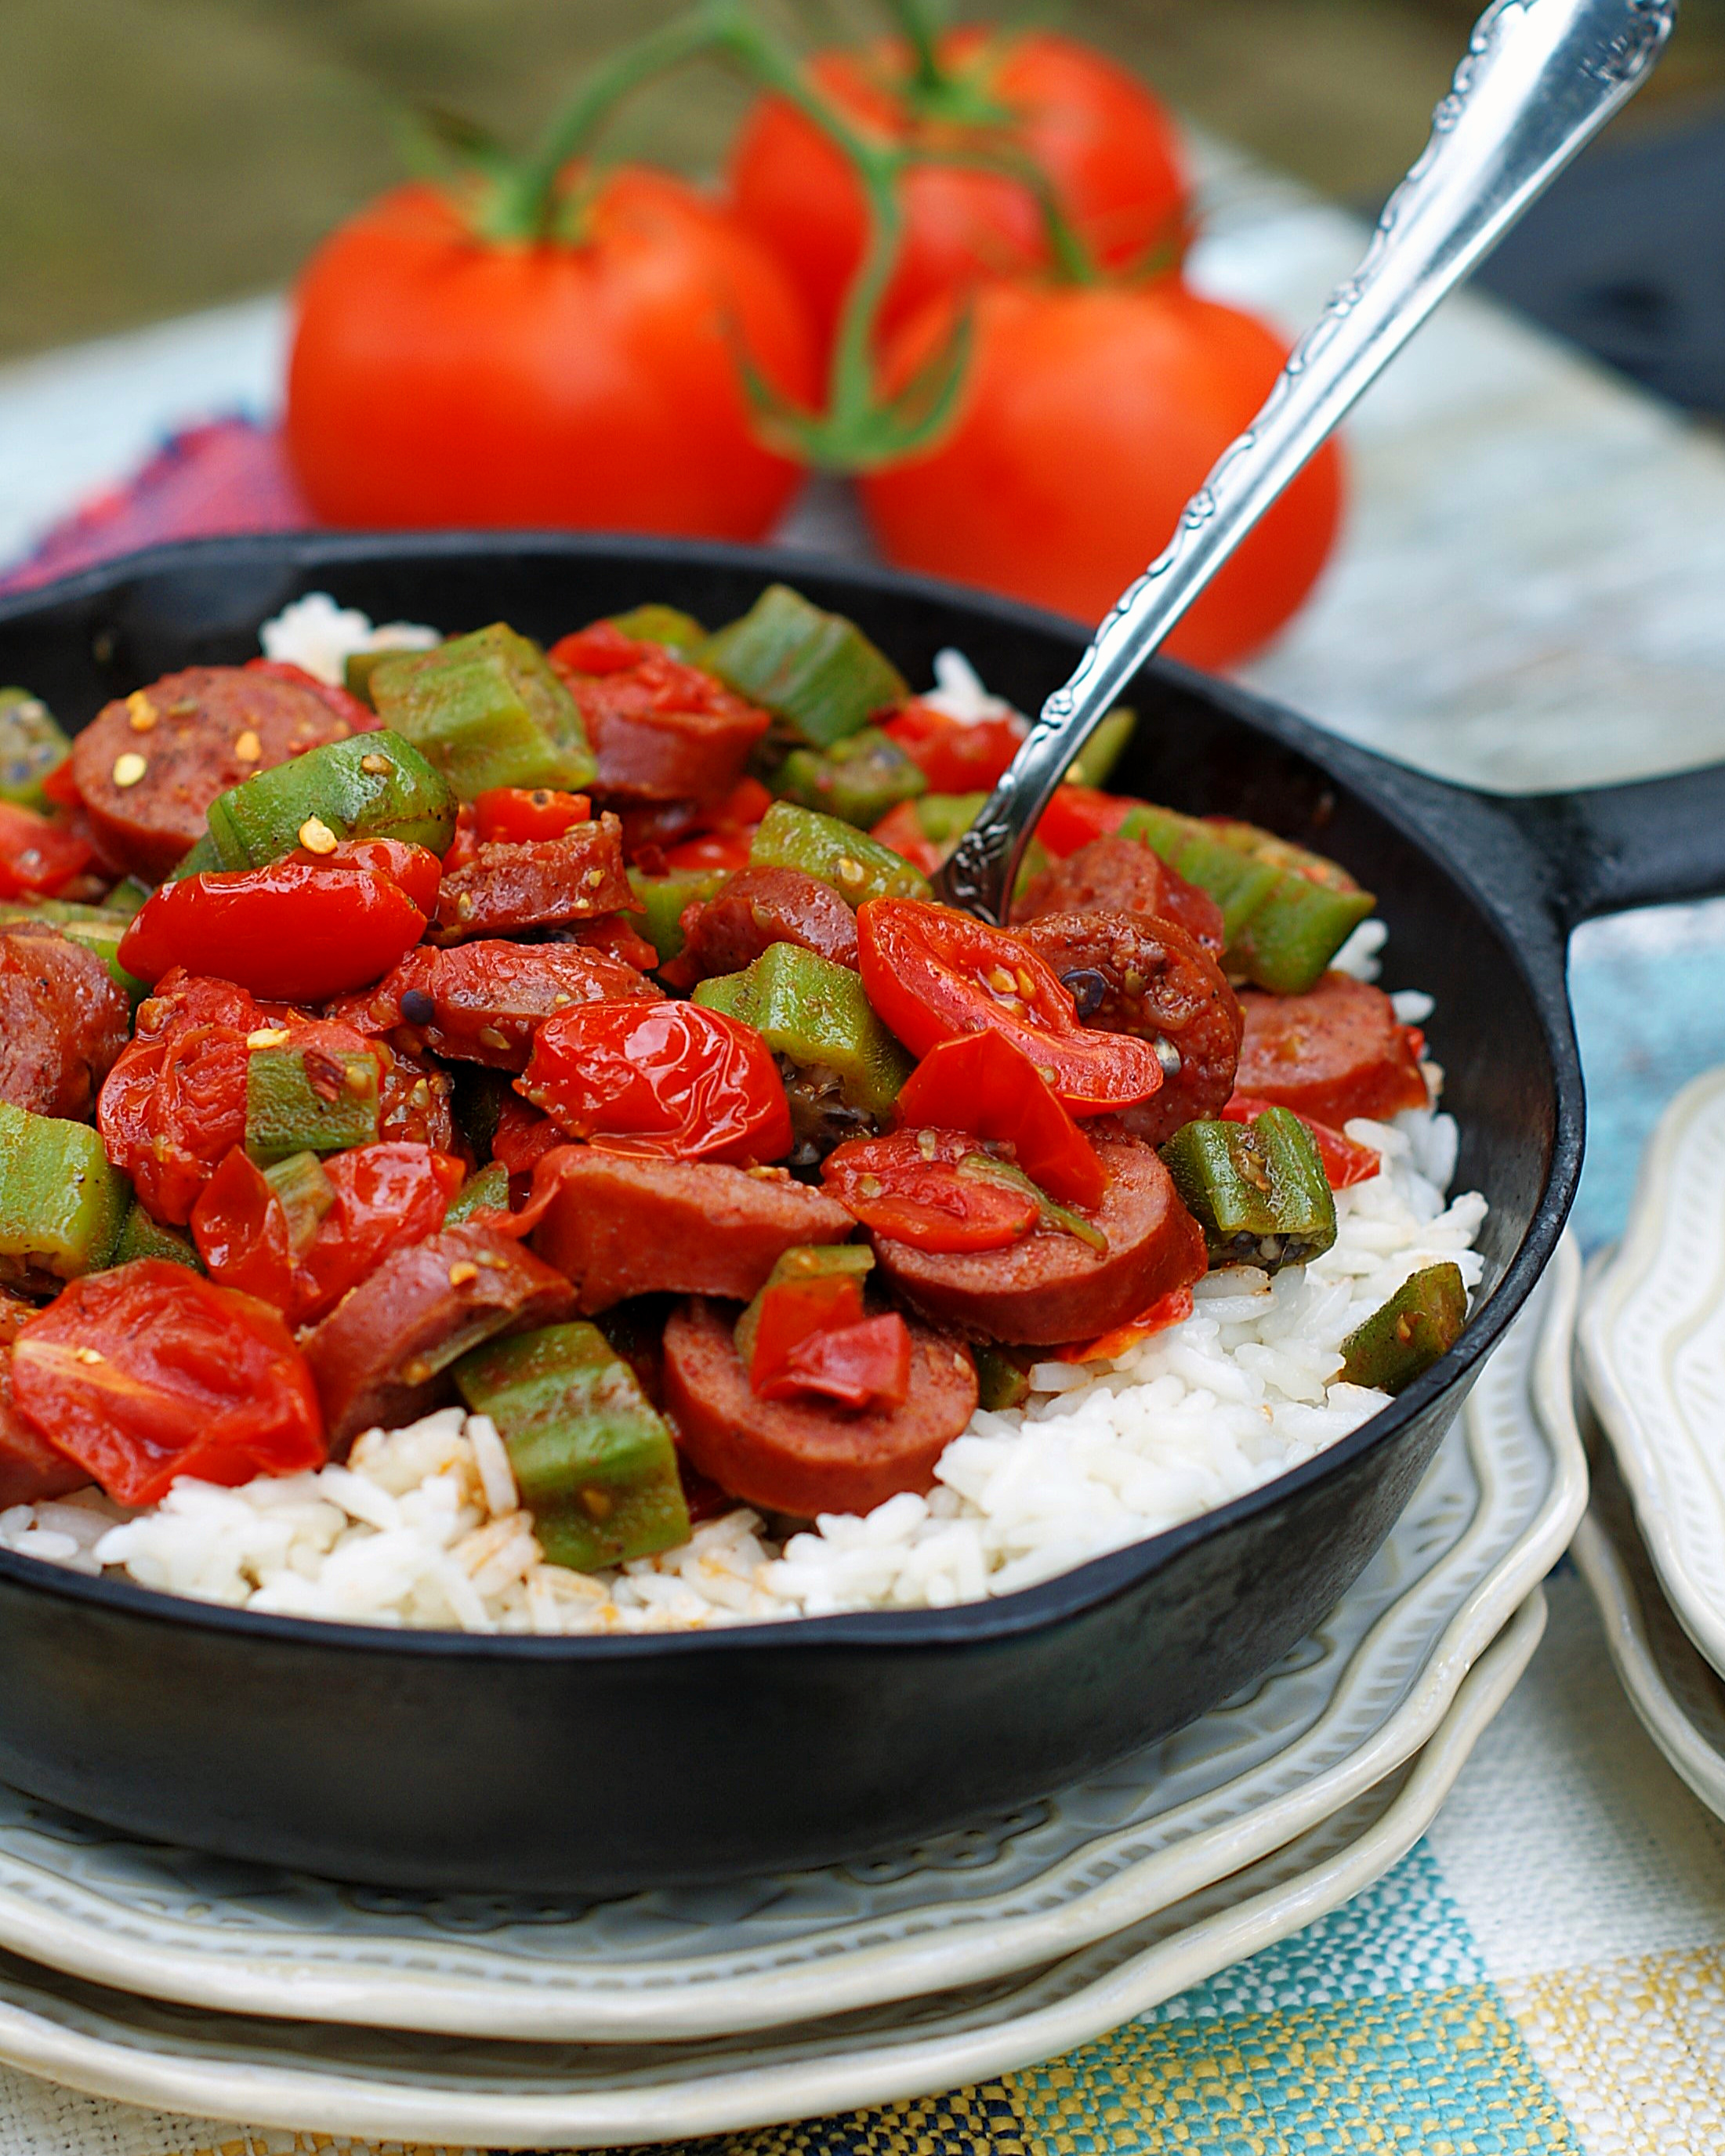 A skillet with white rice, sauteed tomatoes, okra and smoked sausage ready to be served.